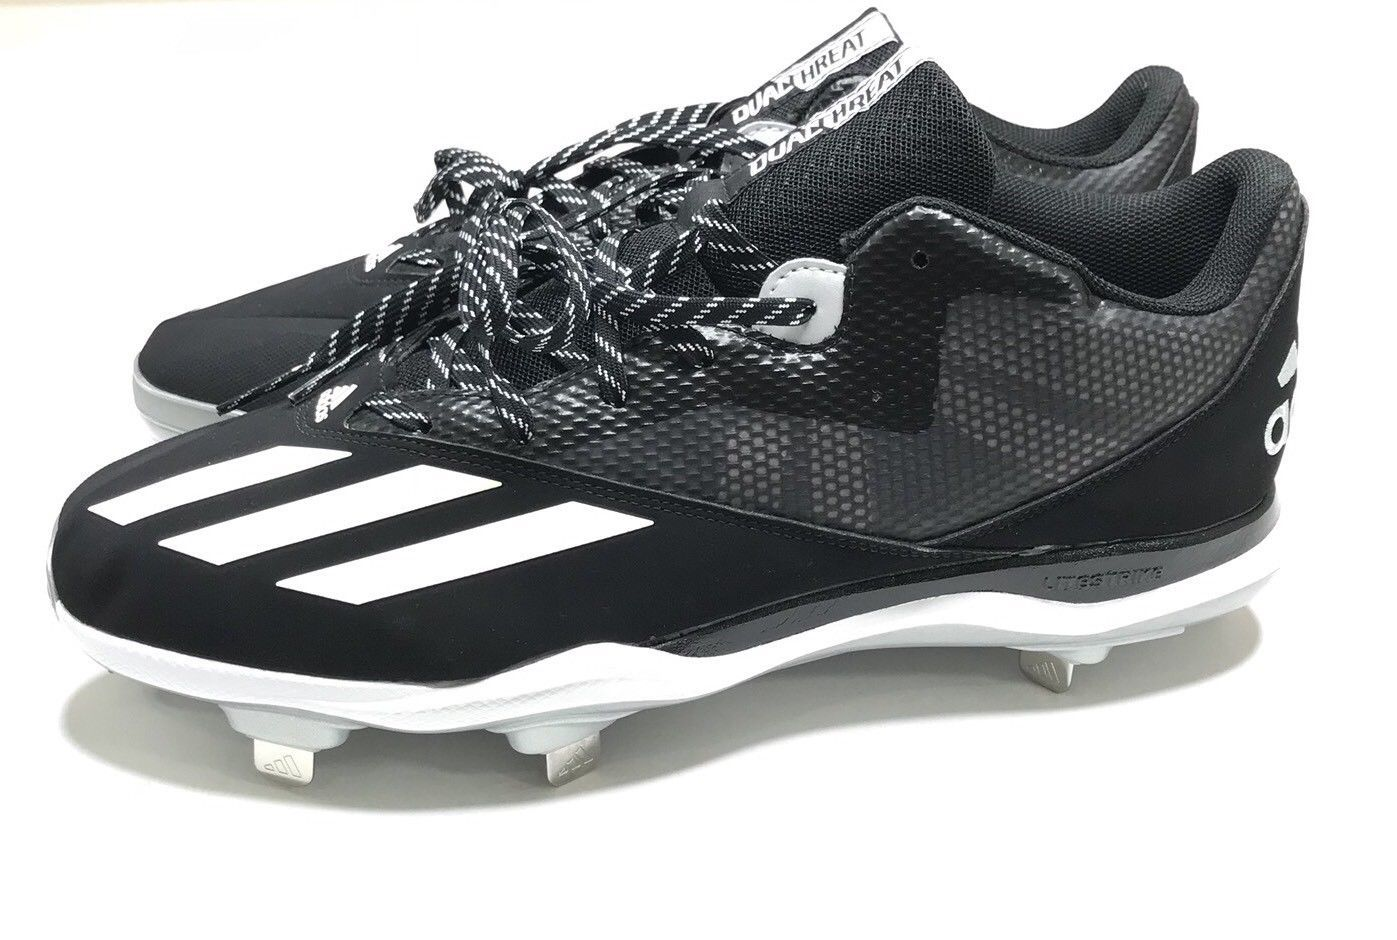 a4af16403835 Adidas Dual Threat Cleats NEW Men Size 13 Black White Athletic Sport Shoes